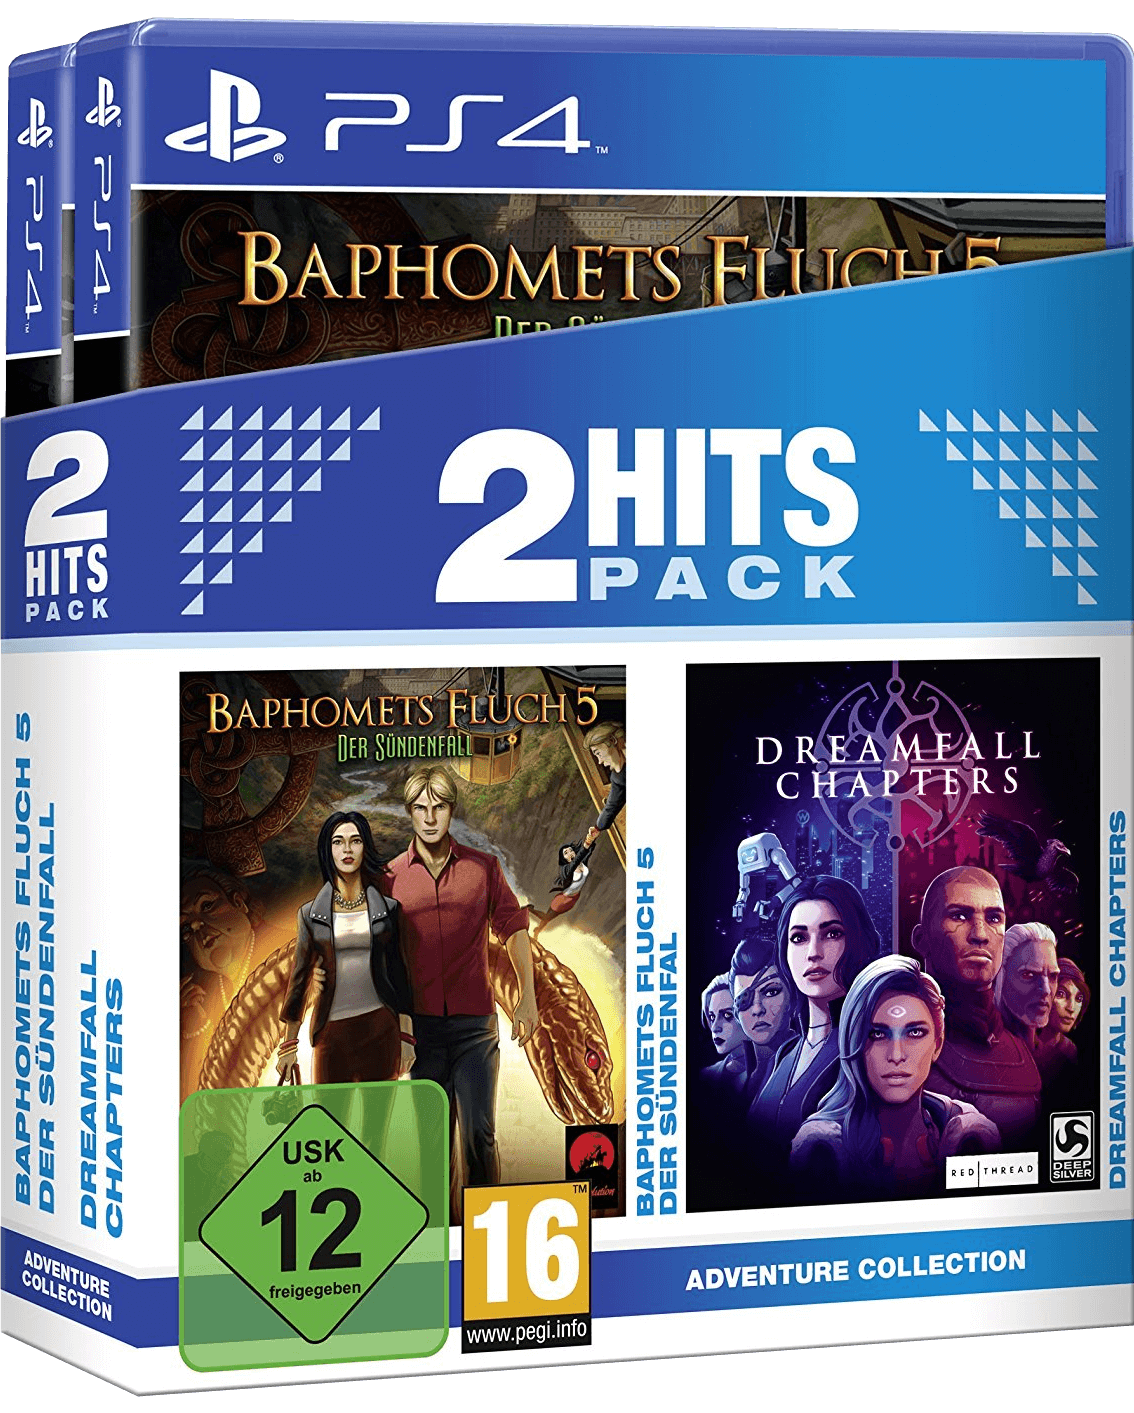 2 Hits Pack - Baphomets Fluch 5: Der Sündenfall + Dreamfall Chapters